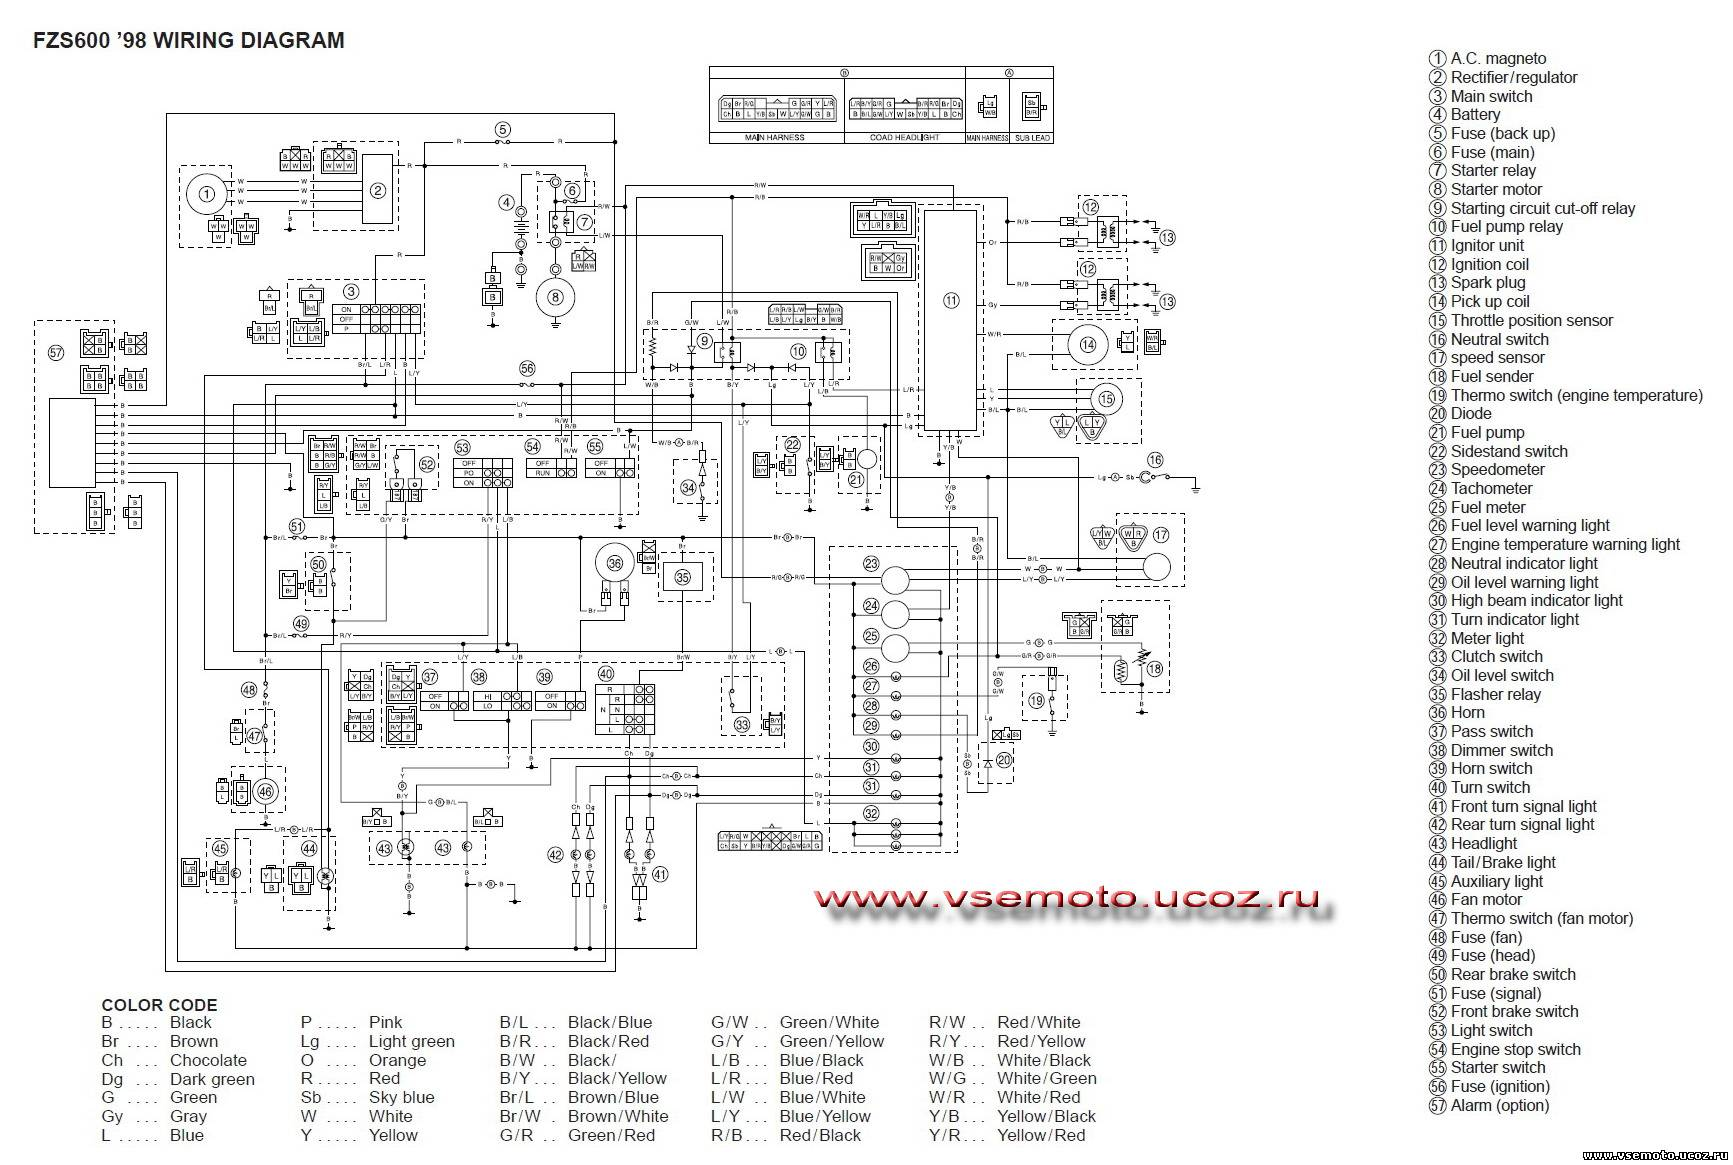 Yamaha Rectifier Wiring Diagram For 8 Trusted 750 Regulater Honda Cb Rectefior Fzs 600 22 Images Diagrams Z50